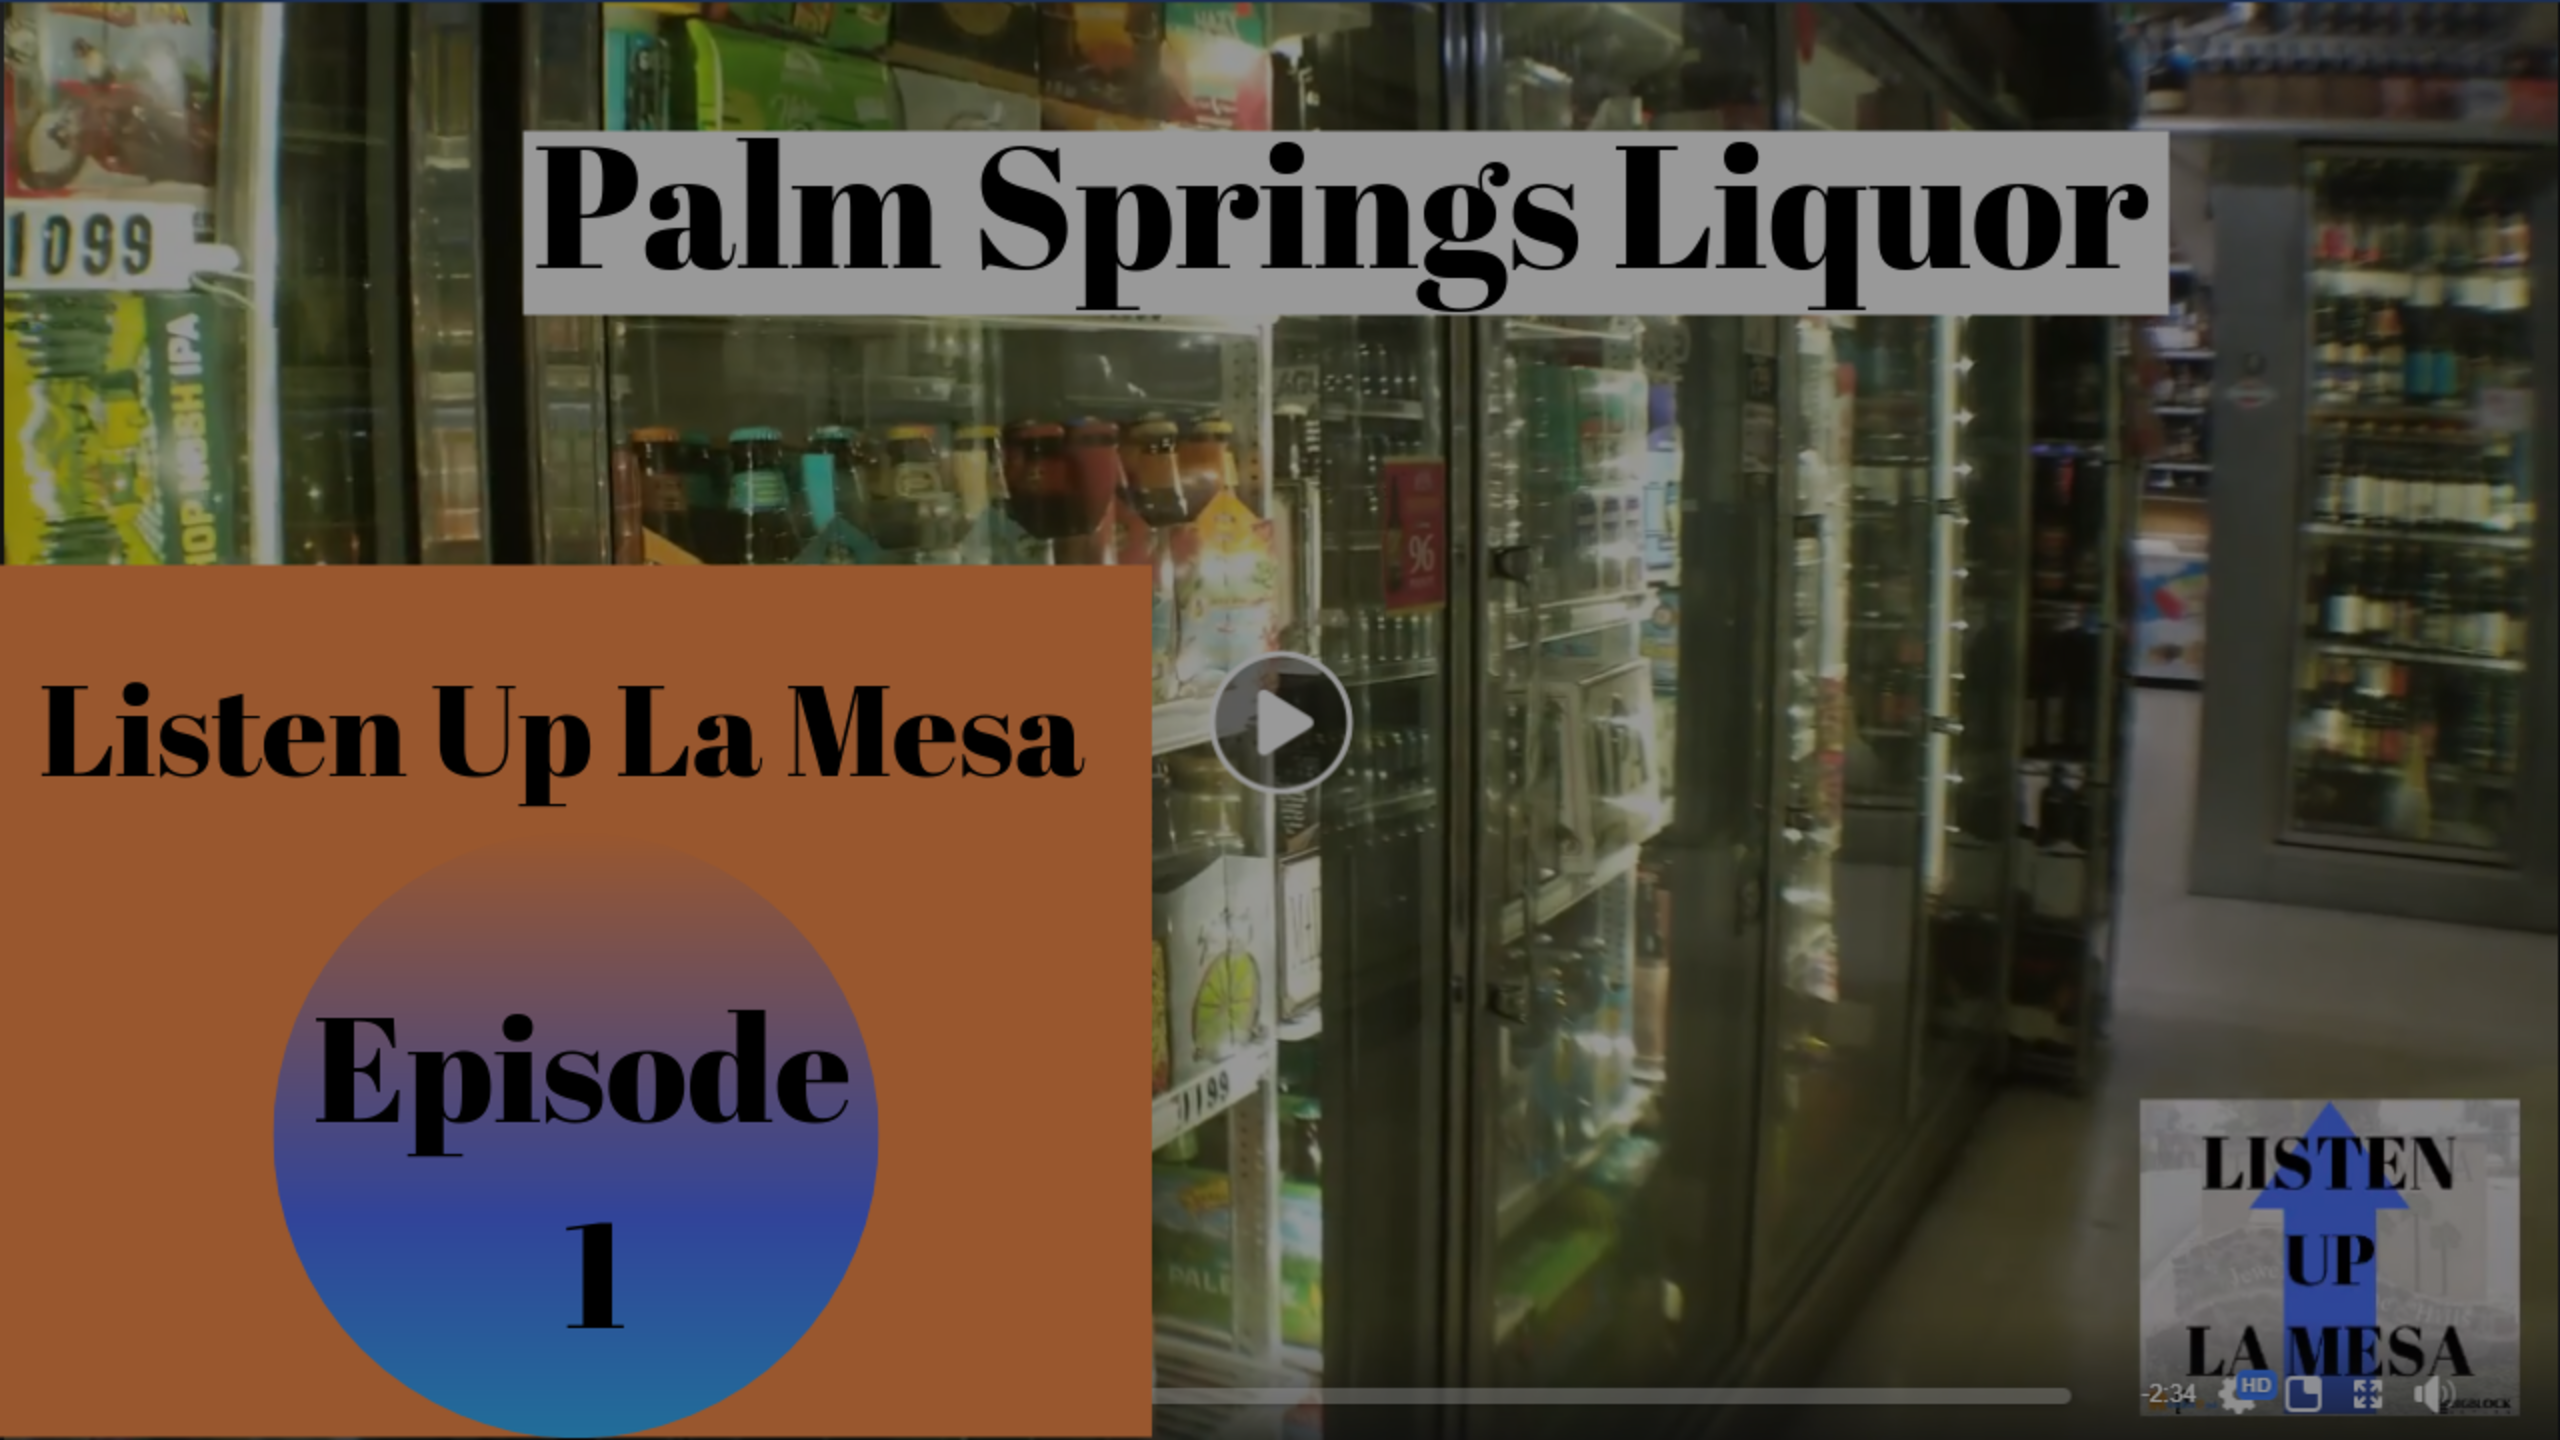 Listen Up La Mesa Ep 1 – Palm Springs Liquor In La Mesa